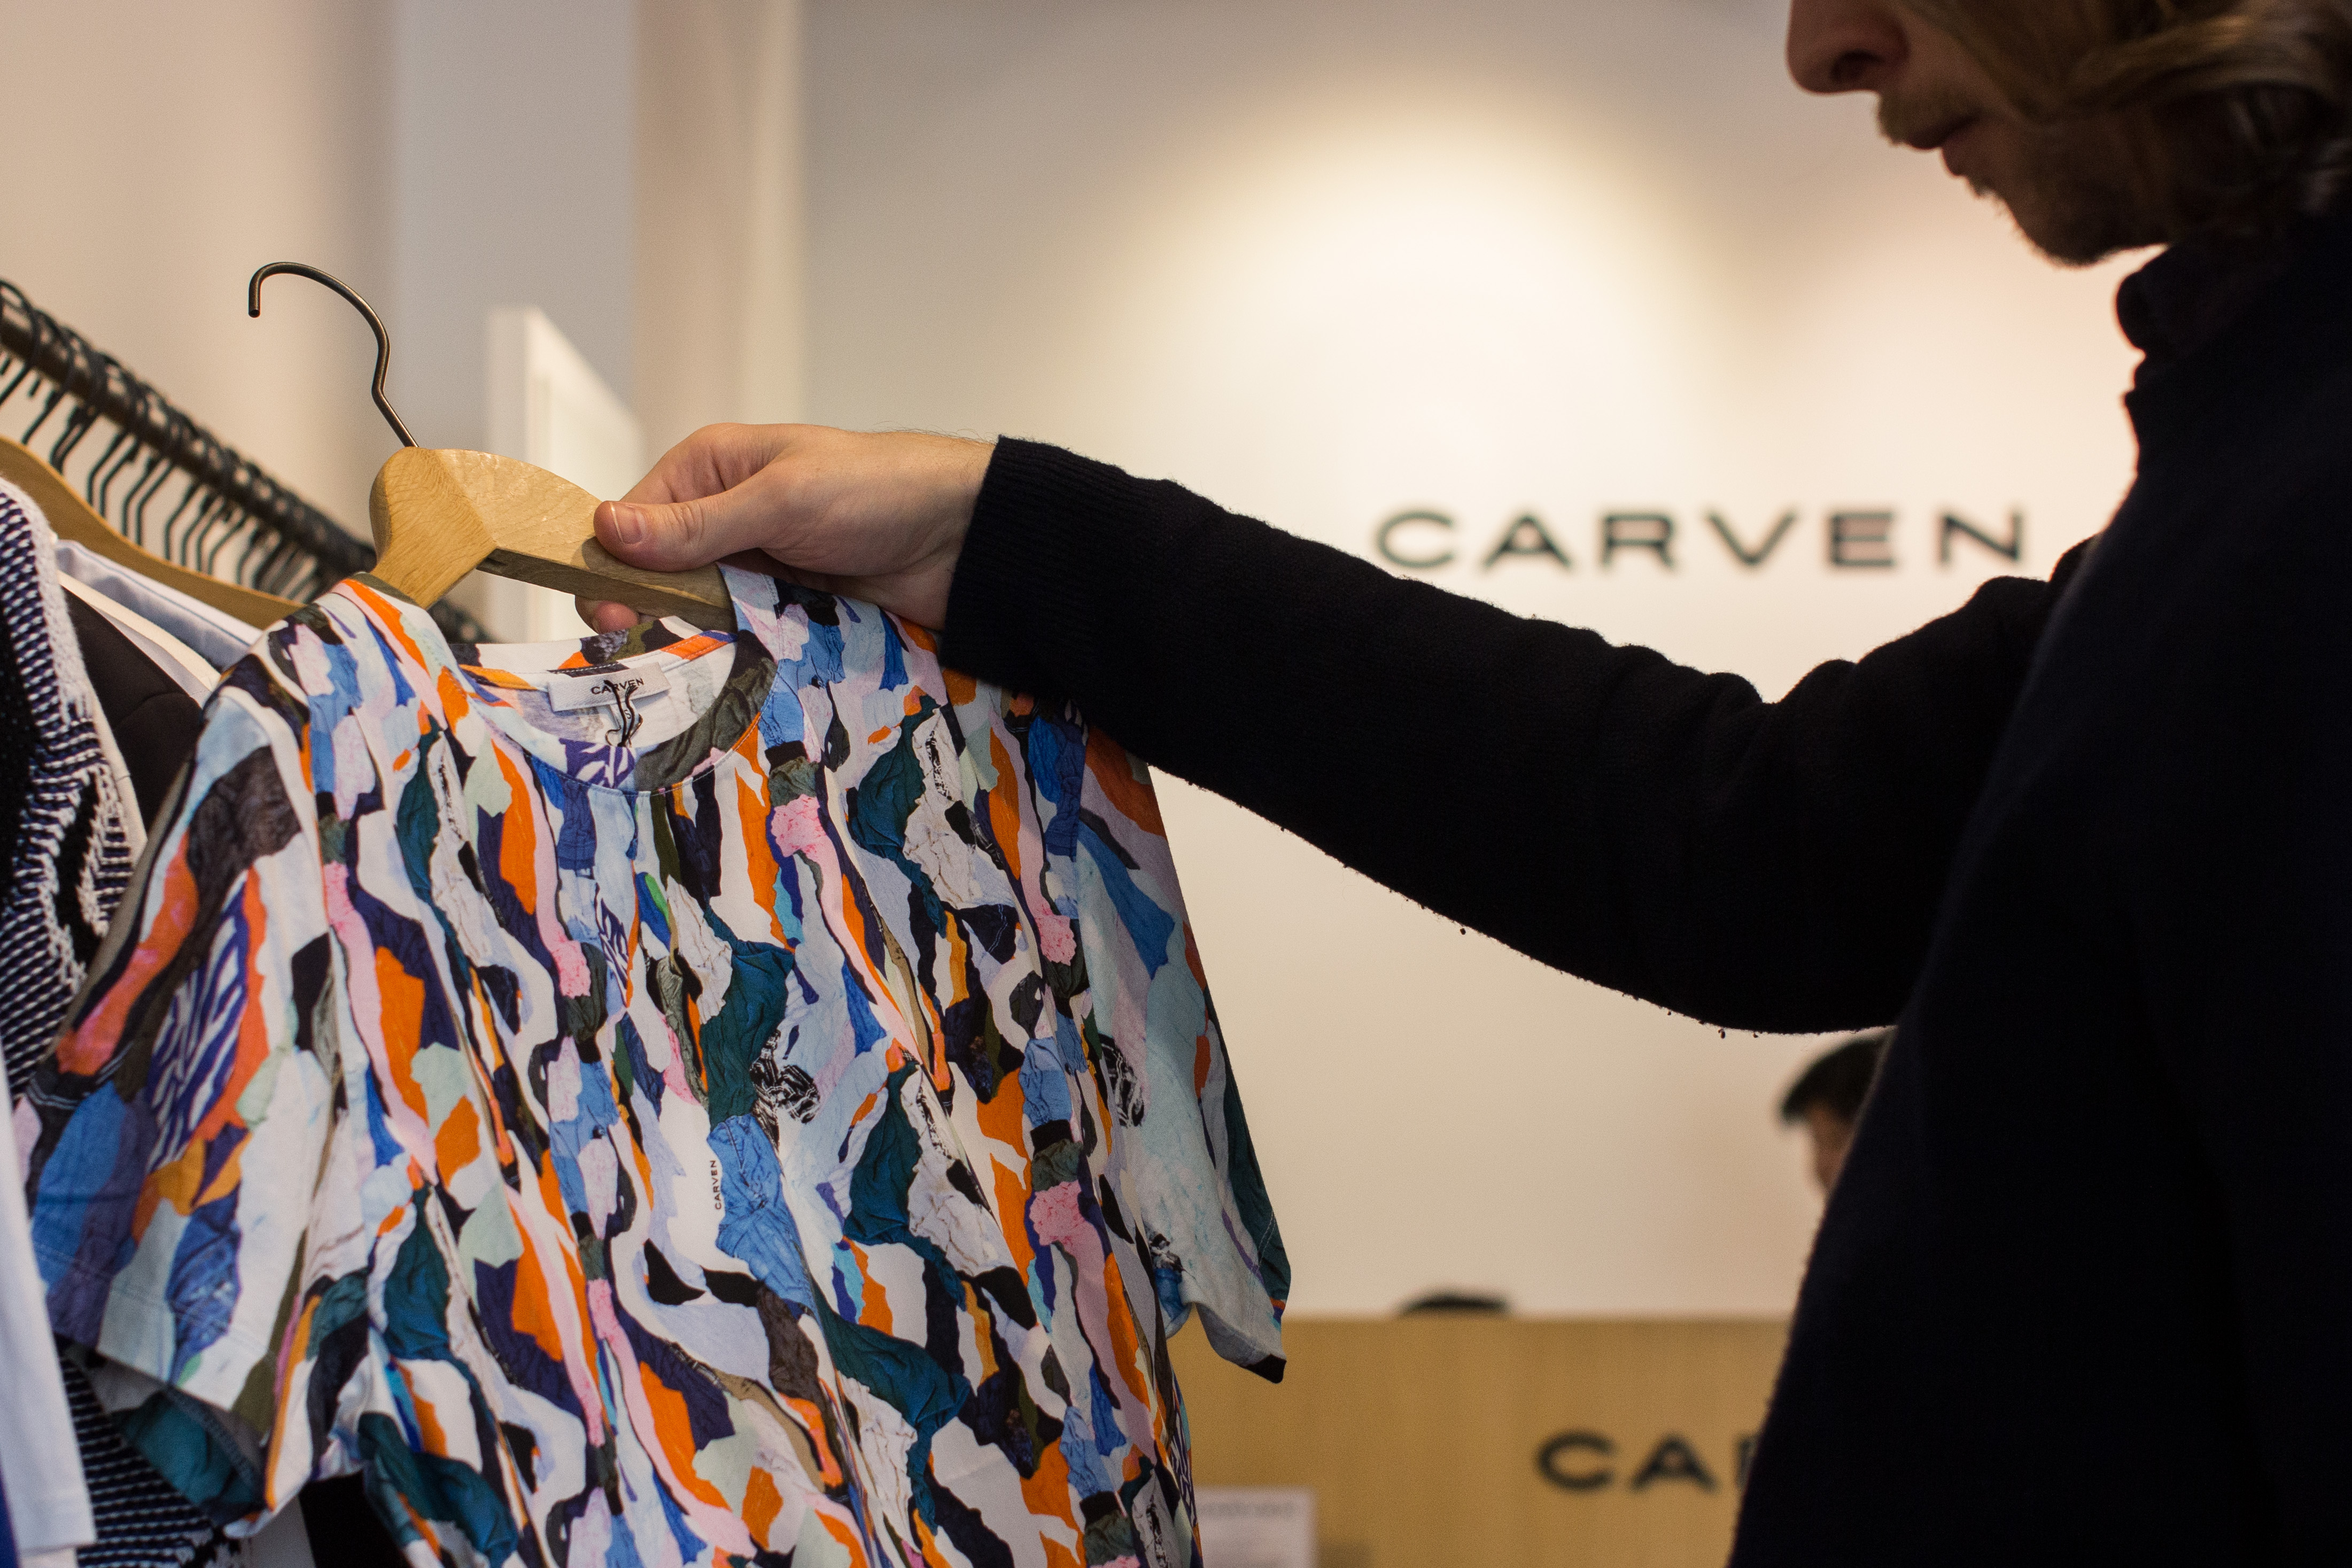 Cool textured Carven t-shirt